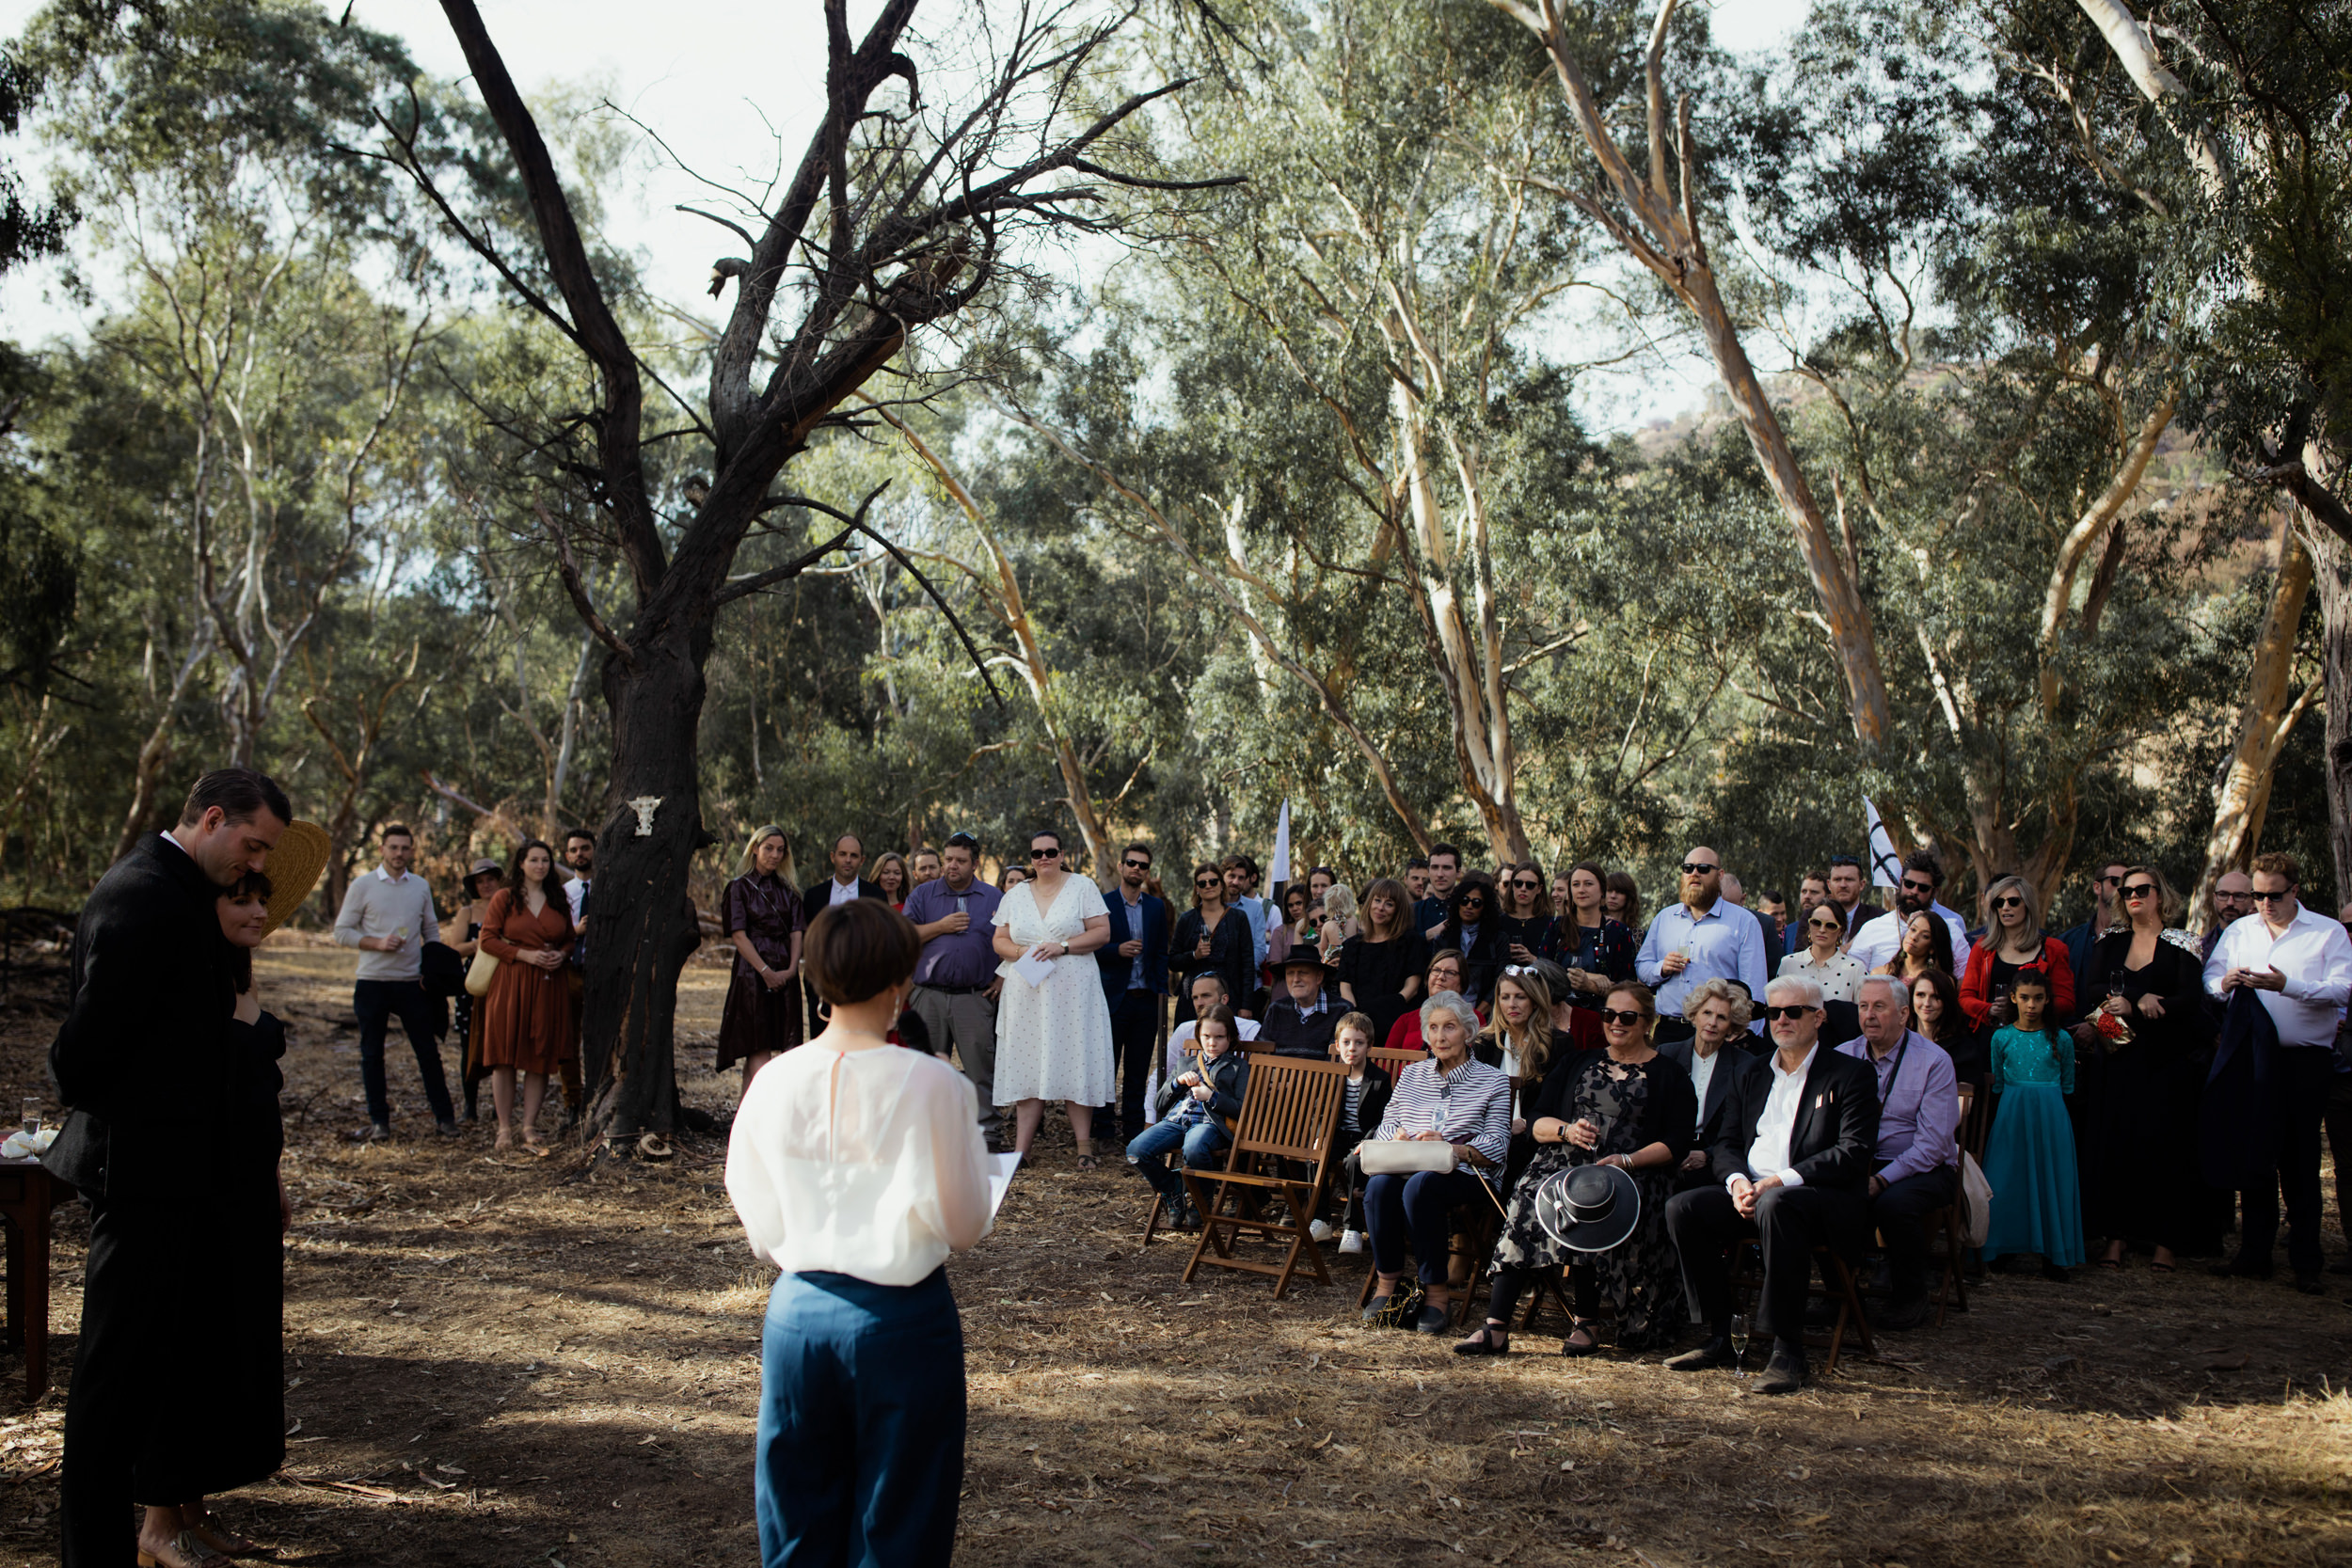 I-Got-You-Babe-Weddings-Claire-Dave-Trawol-VIC-Country-Property-Wedding103.JPG